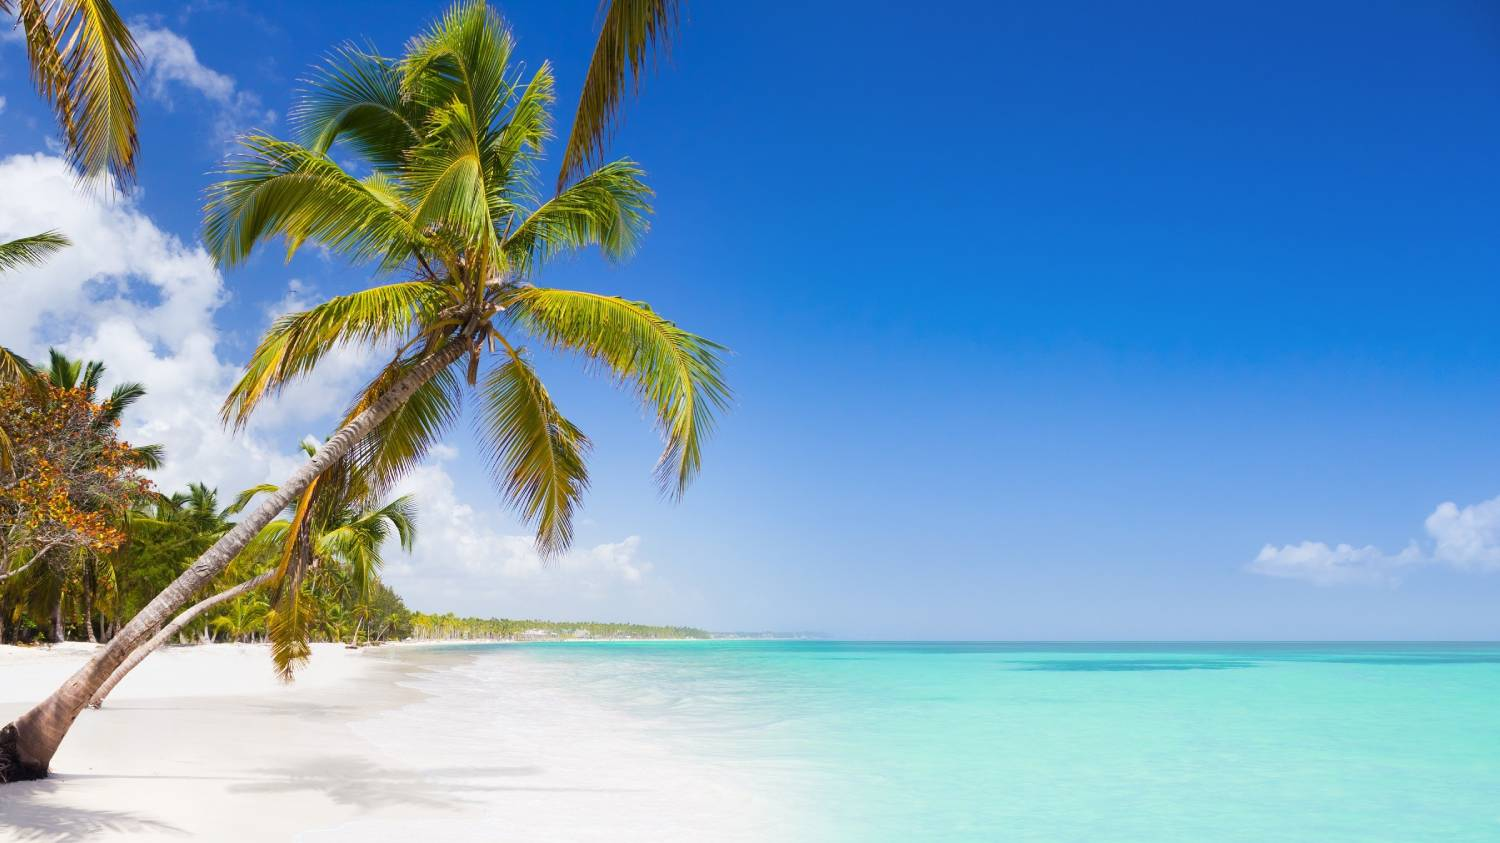 Punta Cana - The Best Places To Visit In The Dominican Republic